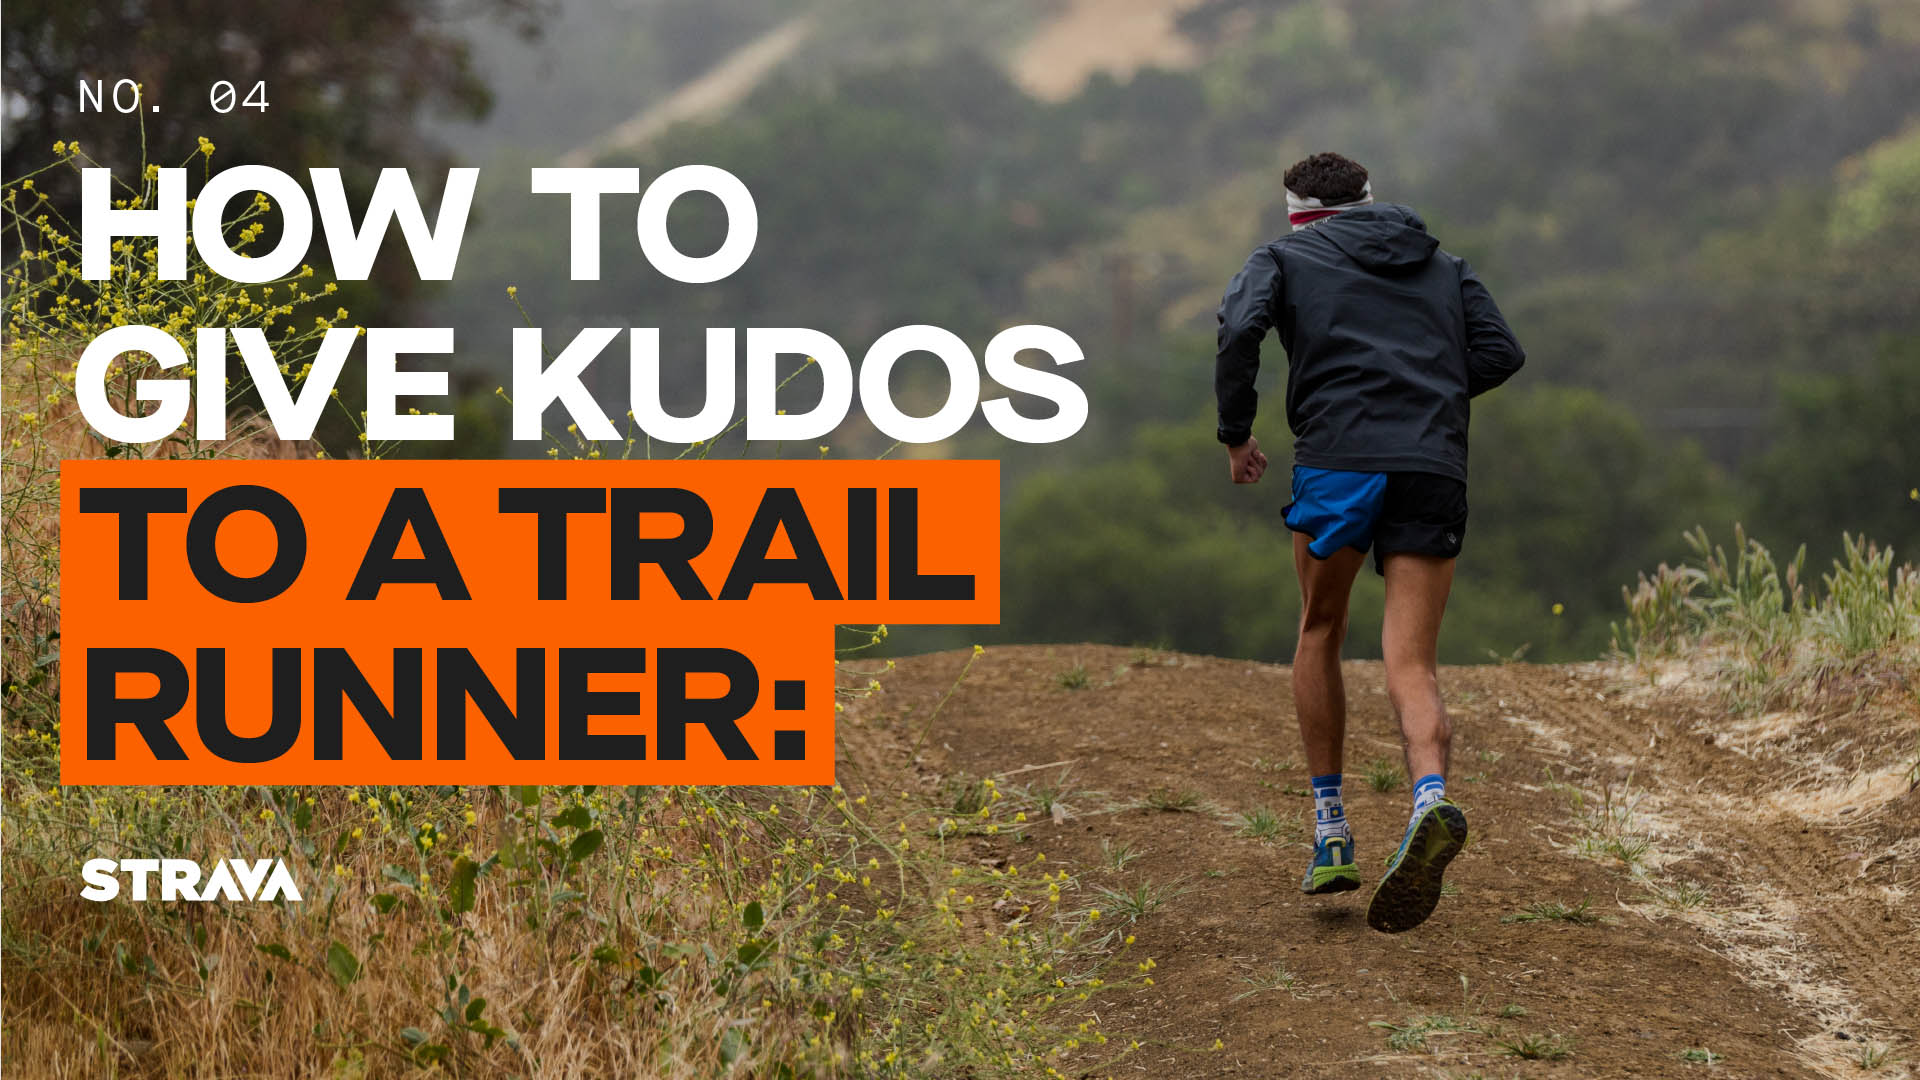 How to Give Kudos to a Trail Runner